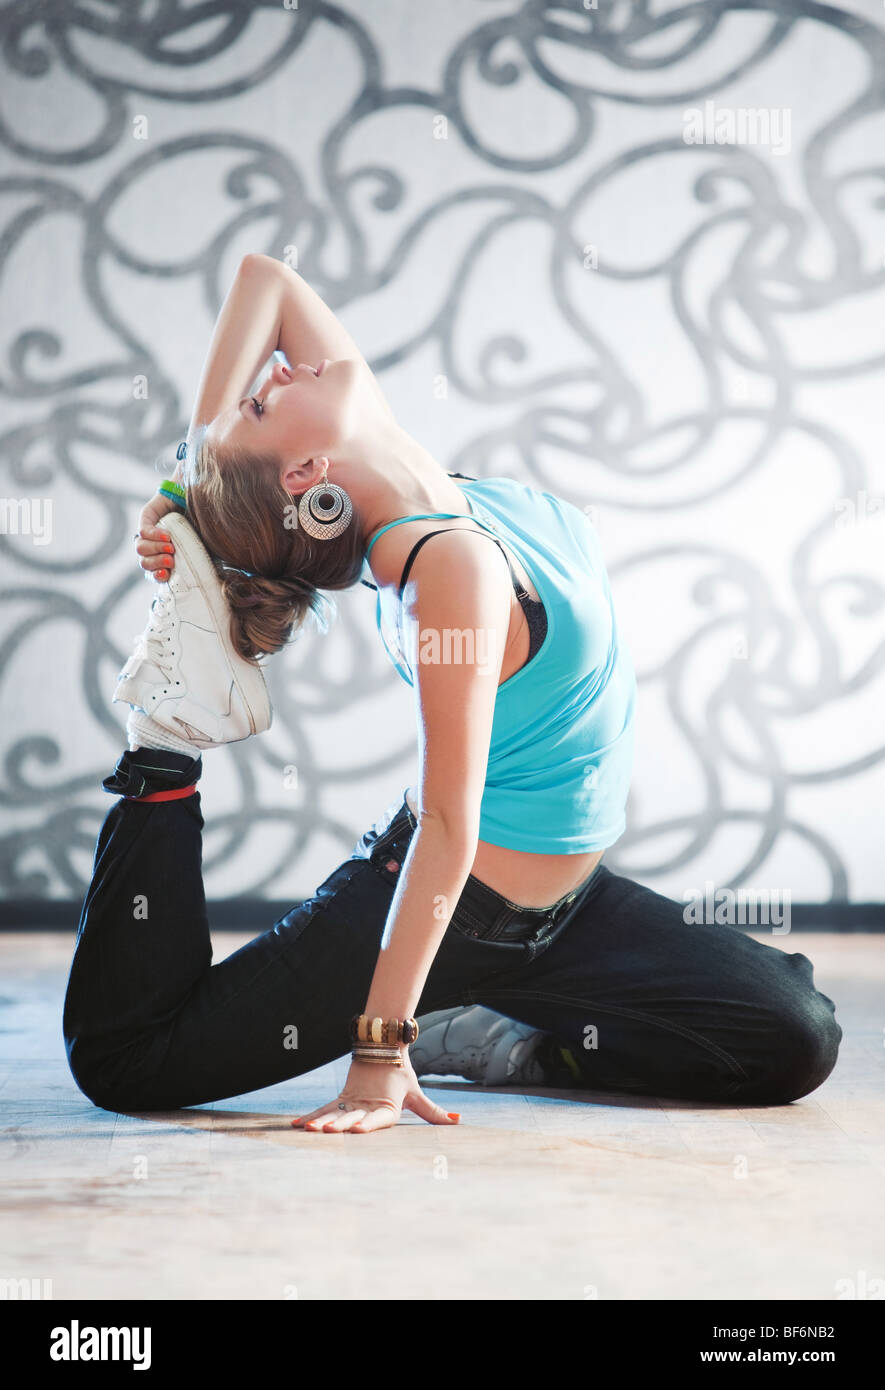 Young woman gymnastics. Soft bright light. - Stock Image